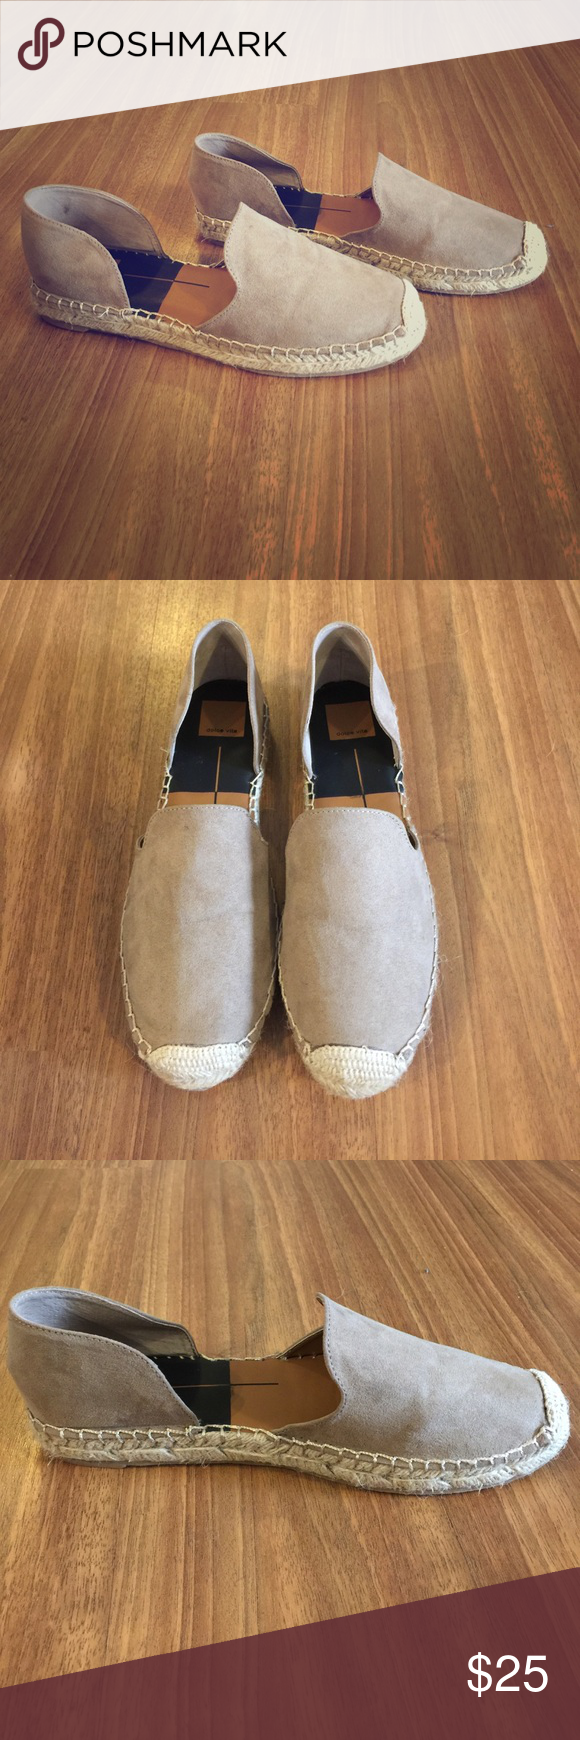 Dolce Vita Espadrilles Tan suede Espadrilles, worn once in amazing condition! Dolce Vita Shoes Espadrilles